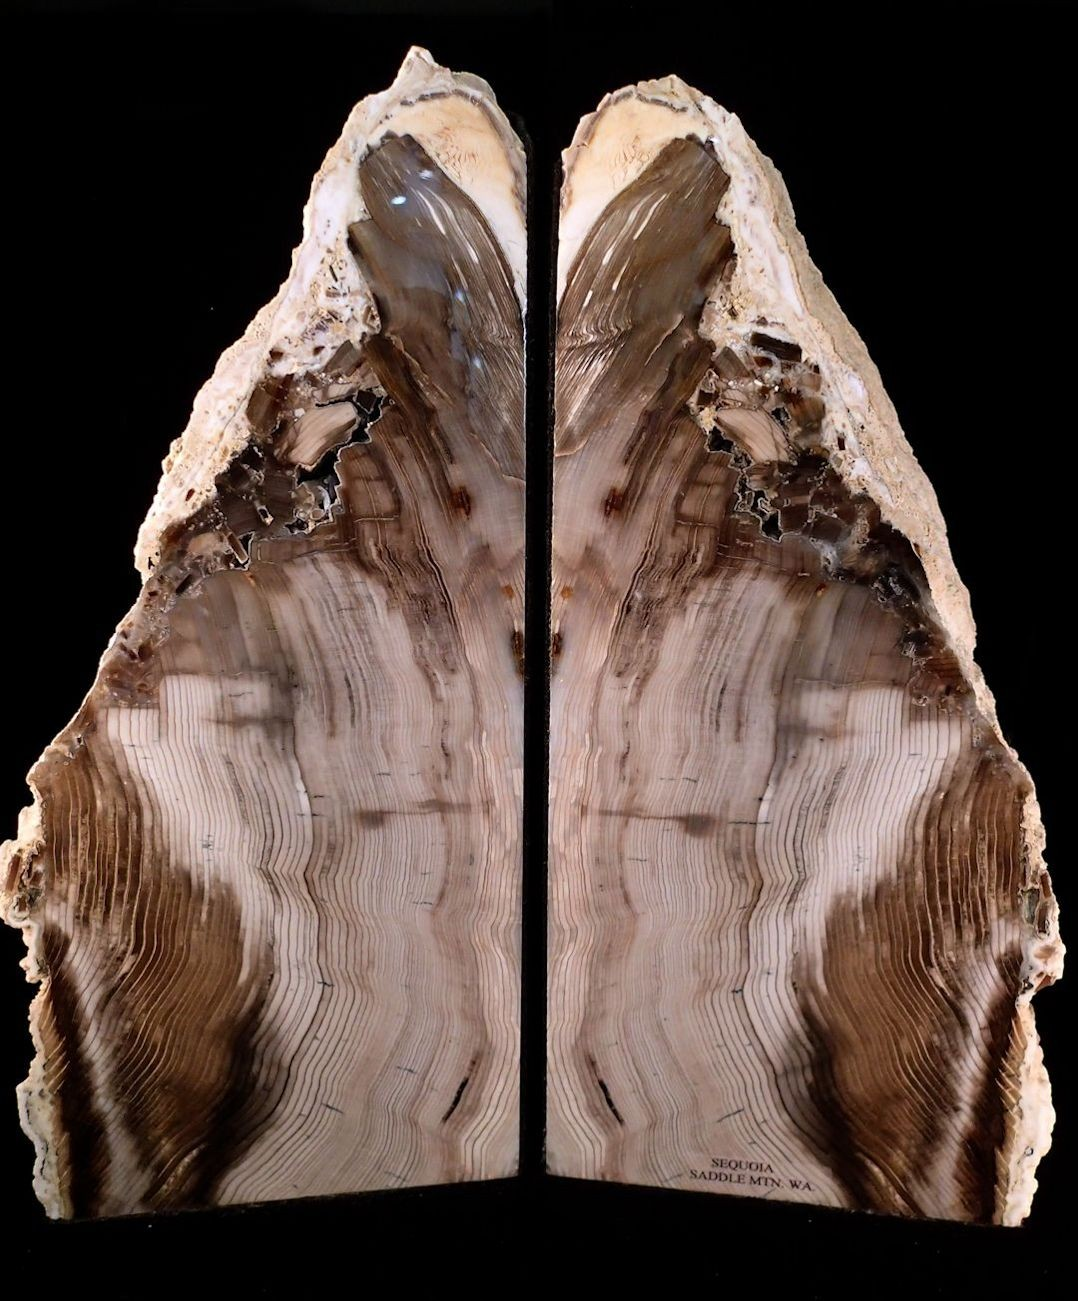 F0171 Petrified wood (Sequoia sp.) bookends from Washington State (SOLD)